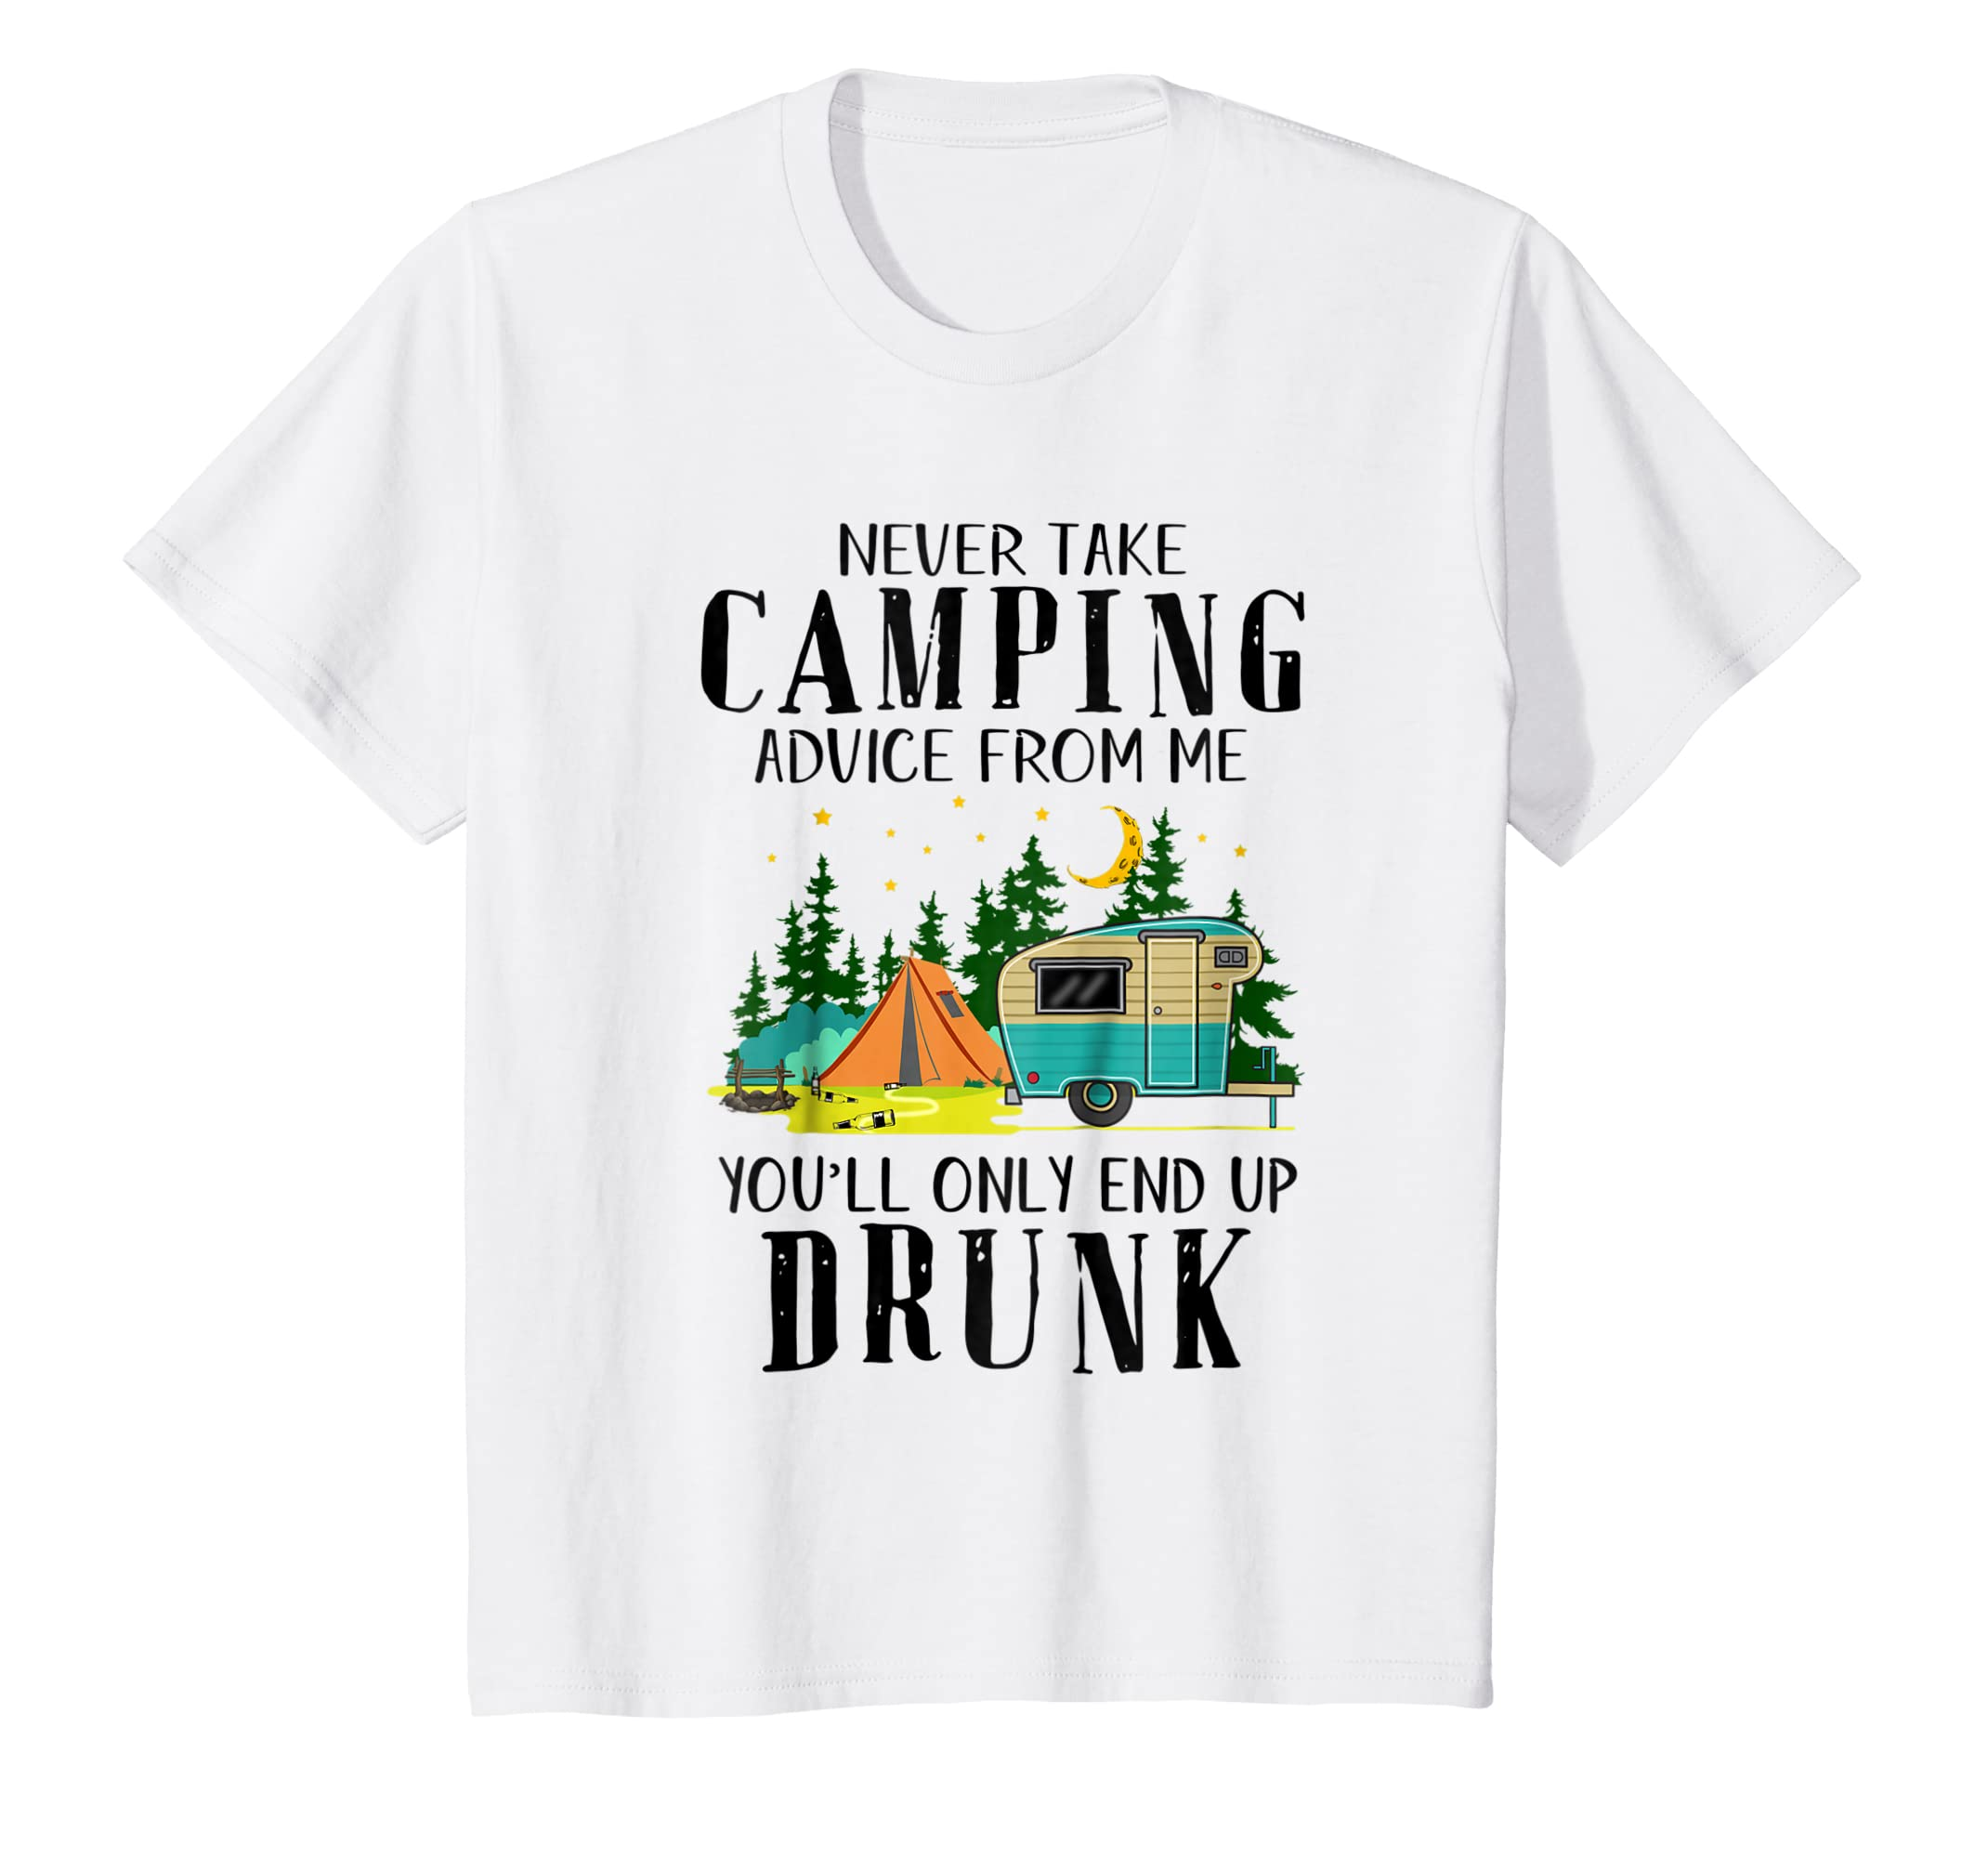 47dbd786e Amazon.com: NEVER TAKE CAMPING ADVICE FROM ME - Caming Drunk Men Woman T:  Clothing